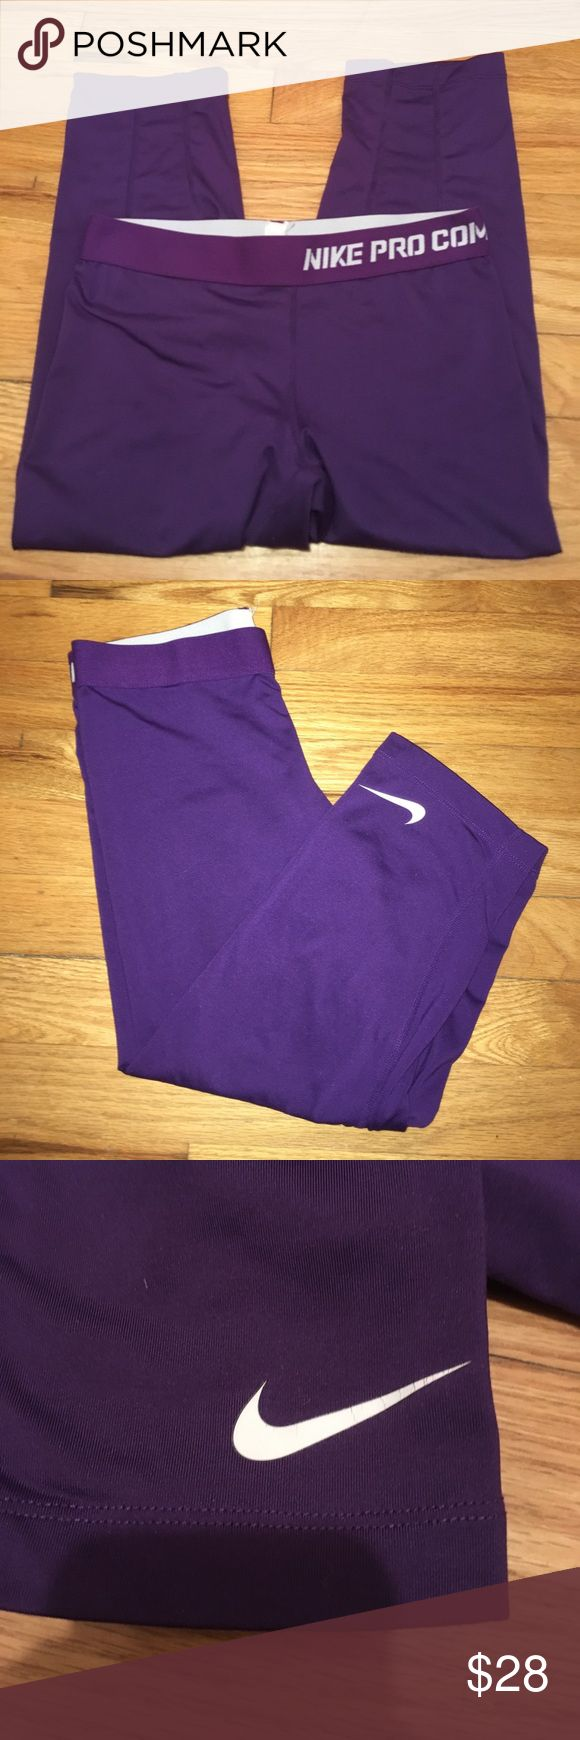 """Nike Pro Combat Dri Fit Purple Cropped Leggings Inseam:17.5"""". Good used condition with slight cracking on the Nike logo. Stretchy and flattering. Comes from a smoke free home Nike Pants Leggings"""